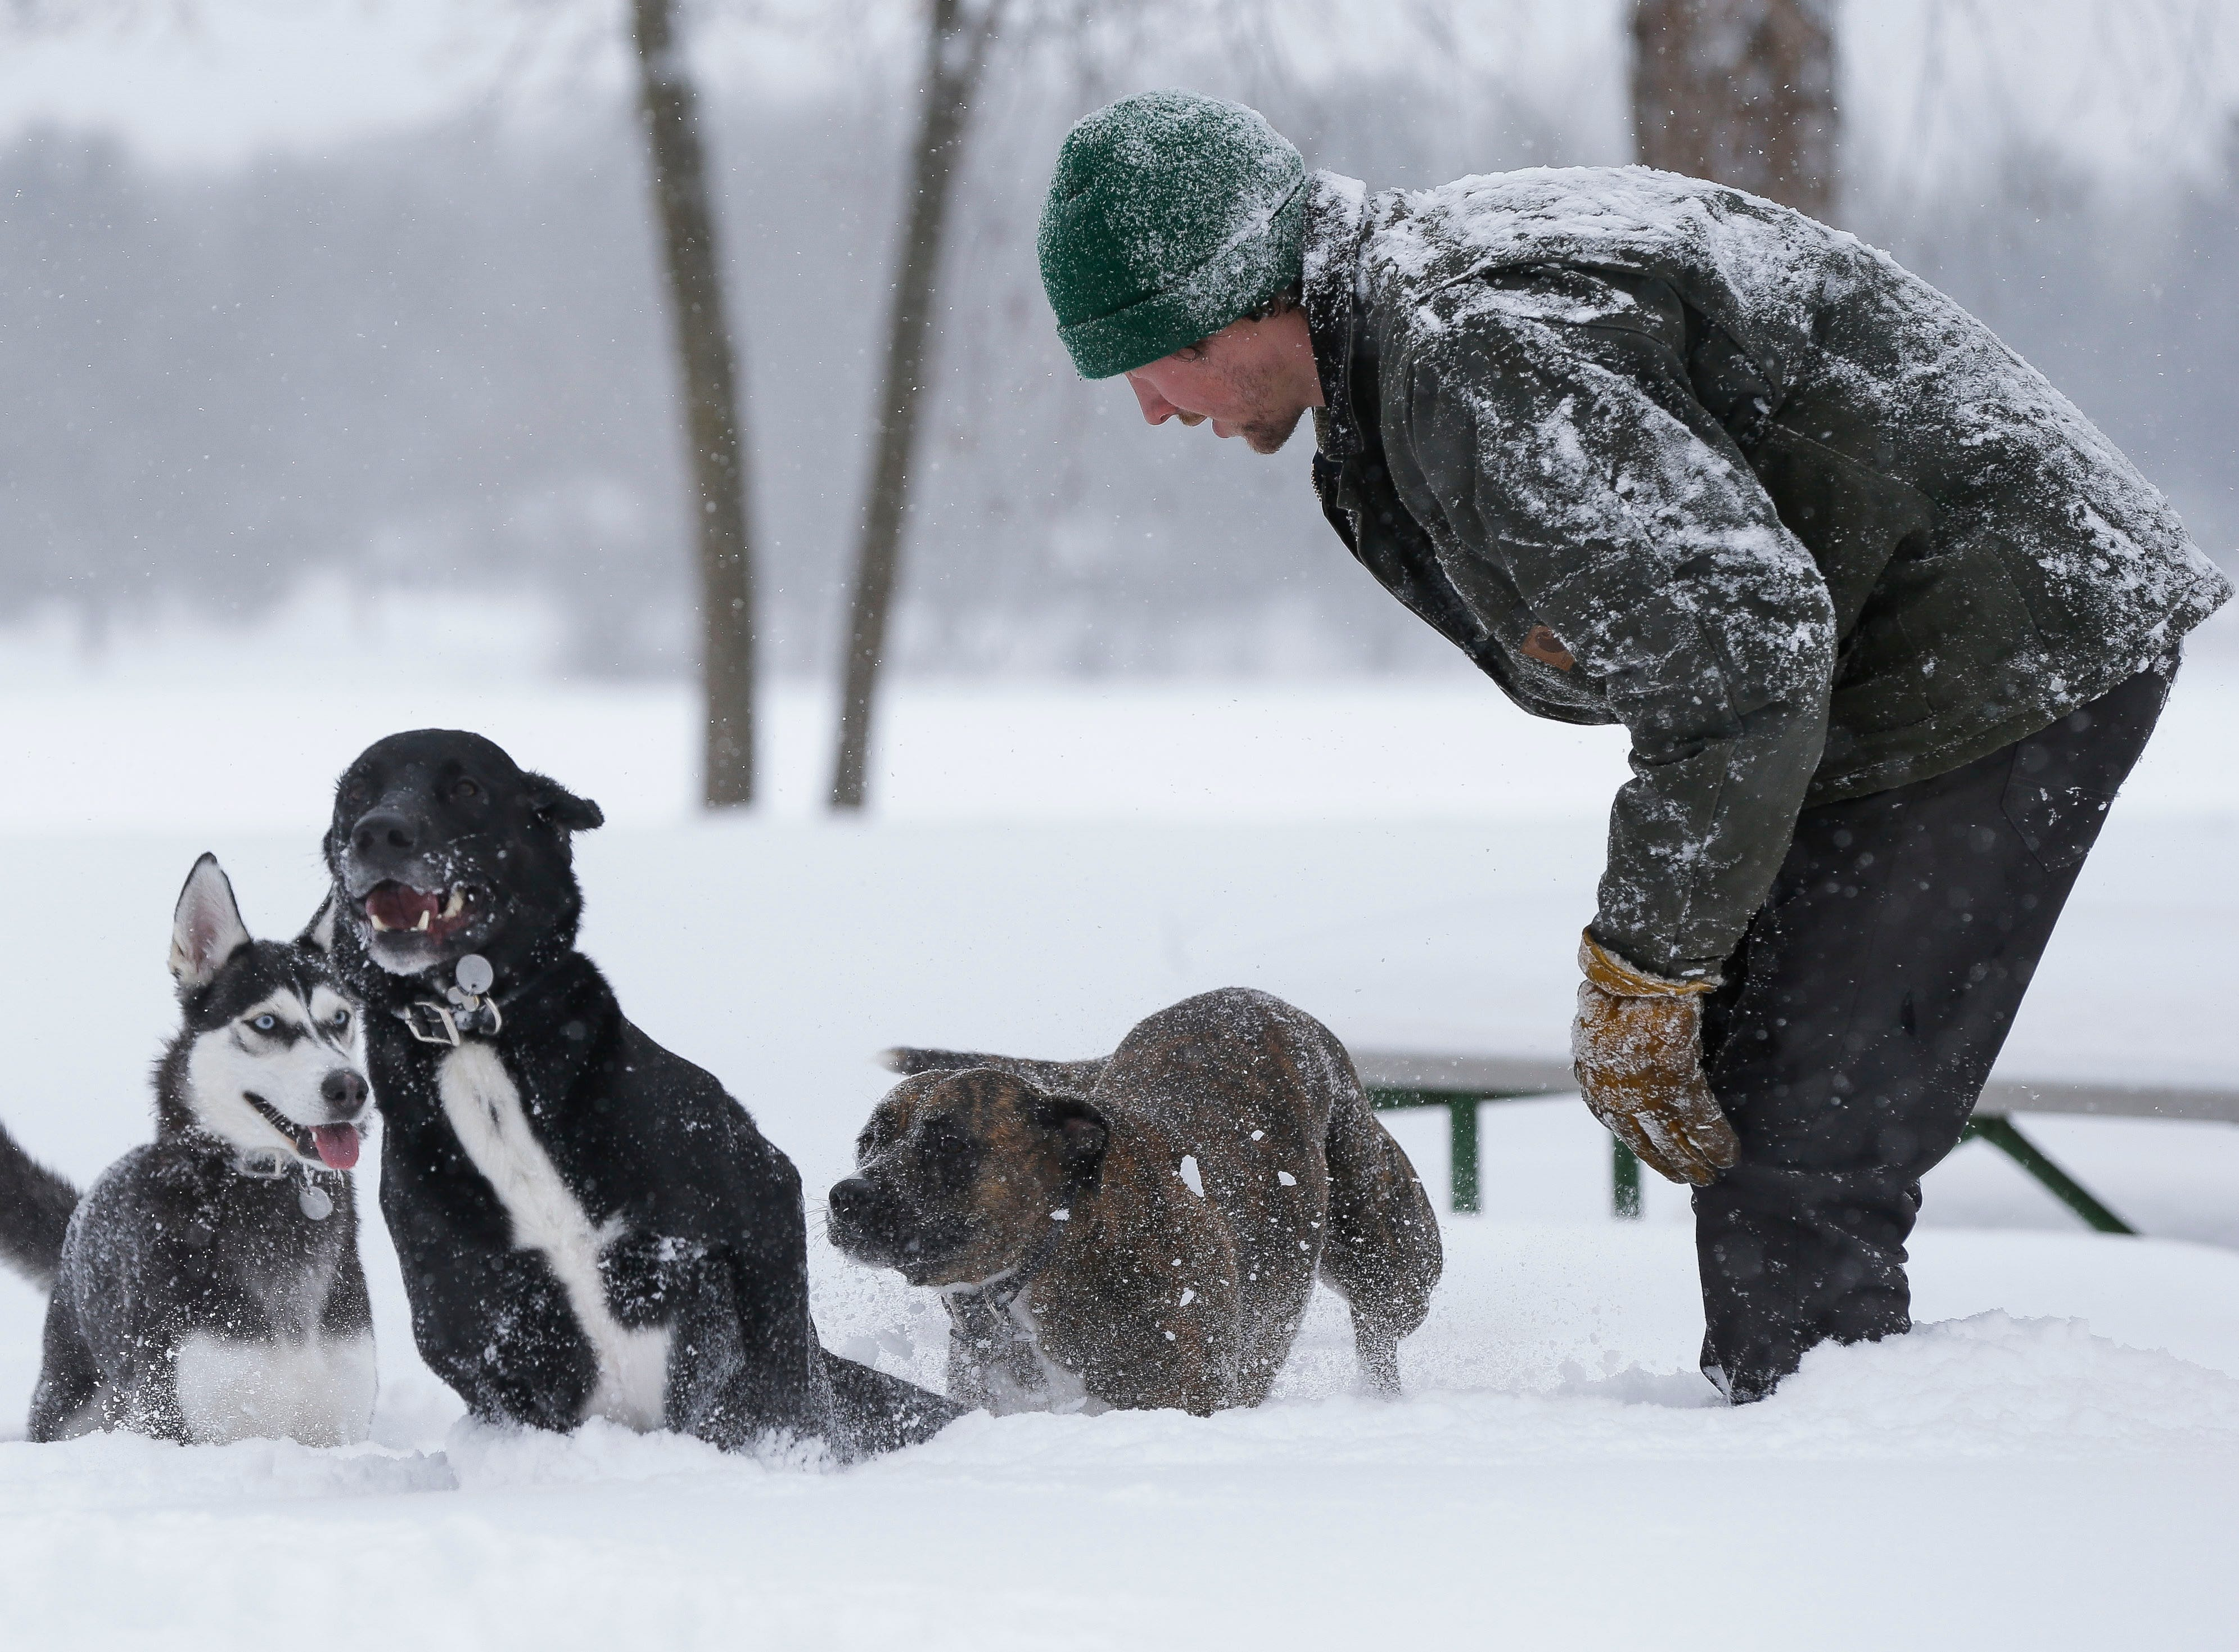 Kameron Krause plays with his dogs on Tuesday, February 12, 2019, at Pioneer Park in Stevens Point, Wis. A winter storm is expected to drop 8-11 inches of snow in central Wisconsin before clearing Tuesday night.